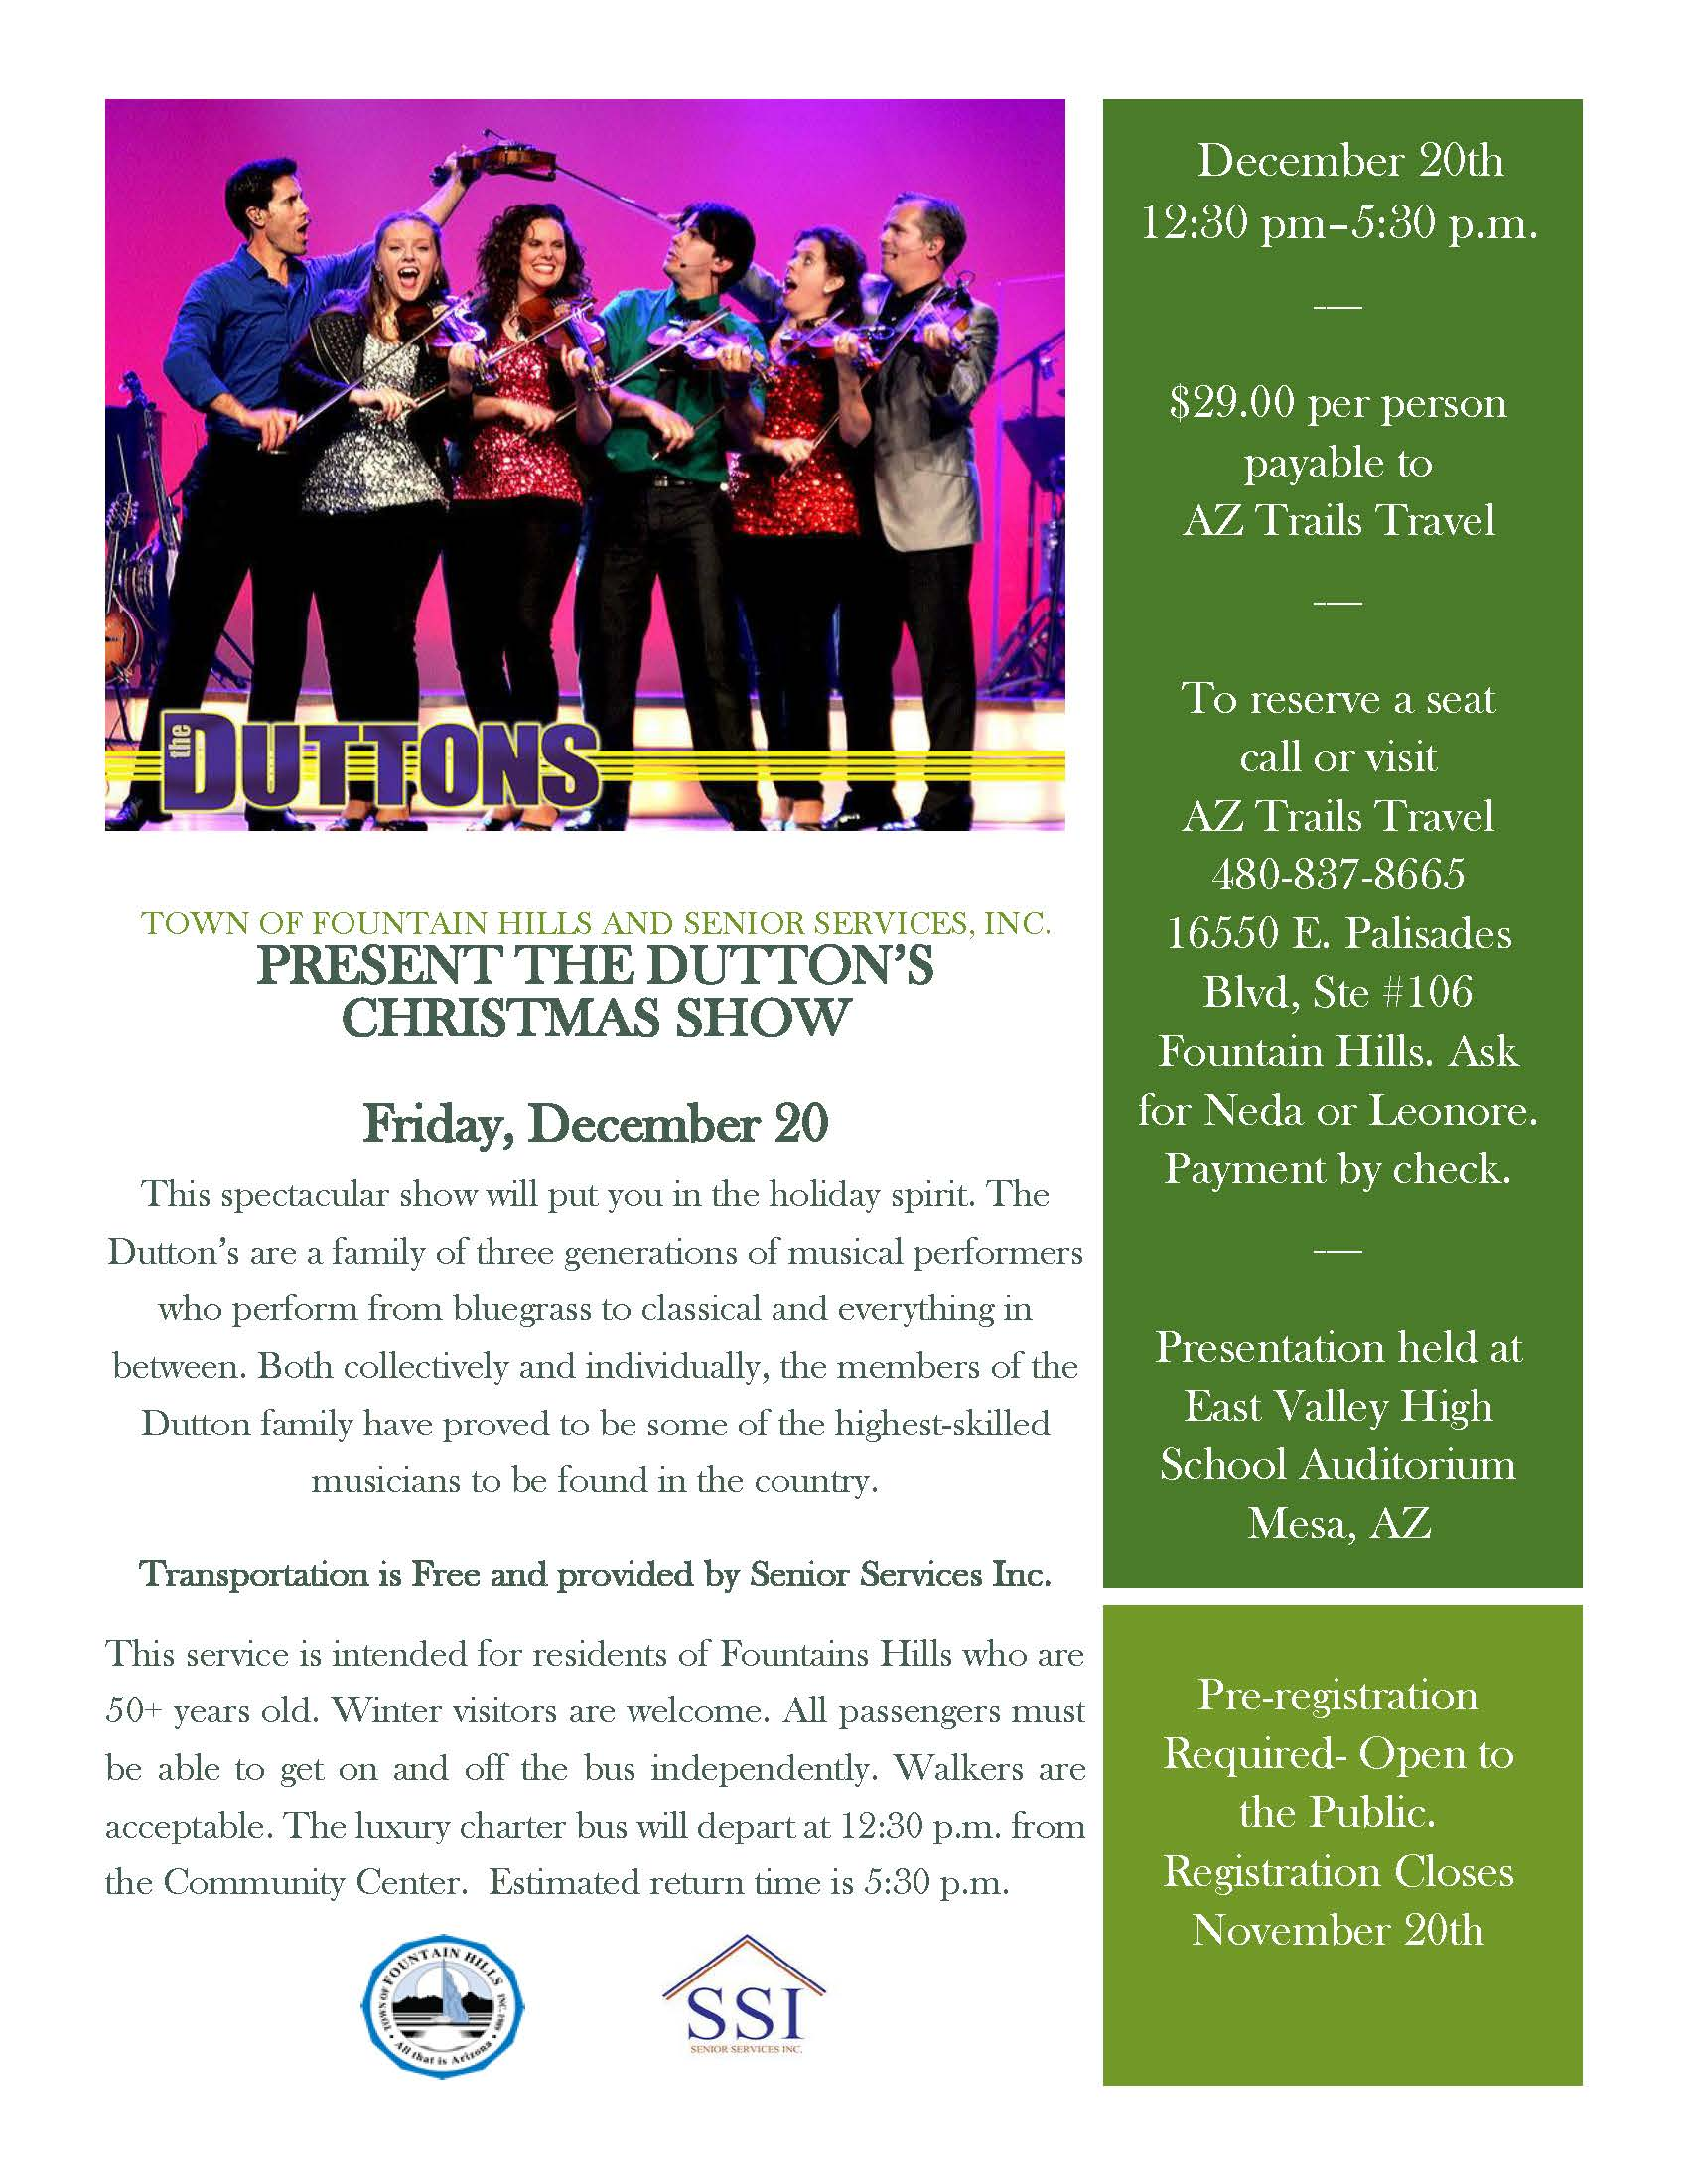 The Dutton Christmas Show Flyer